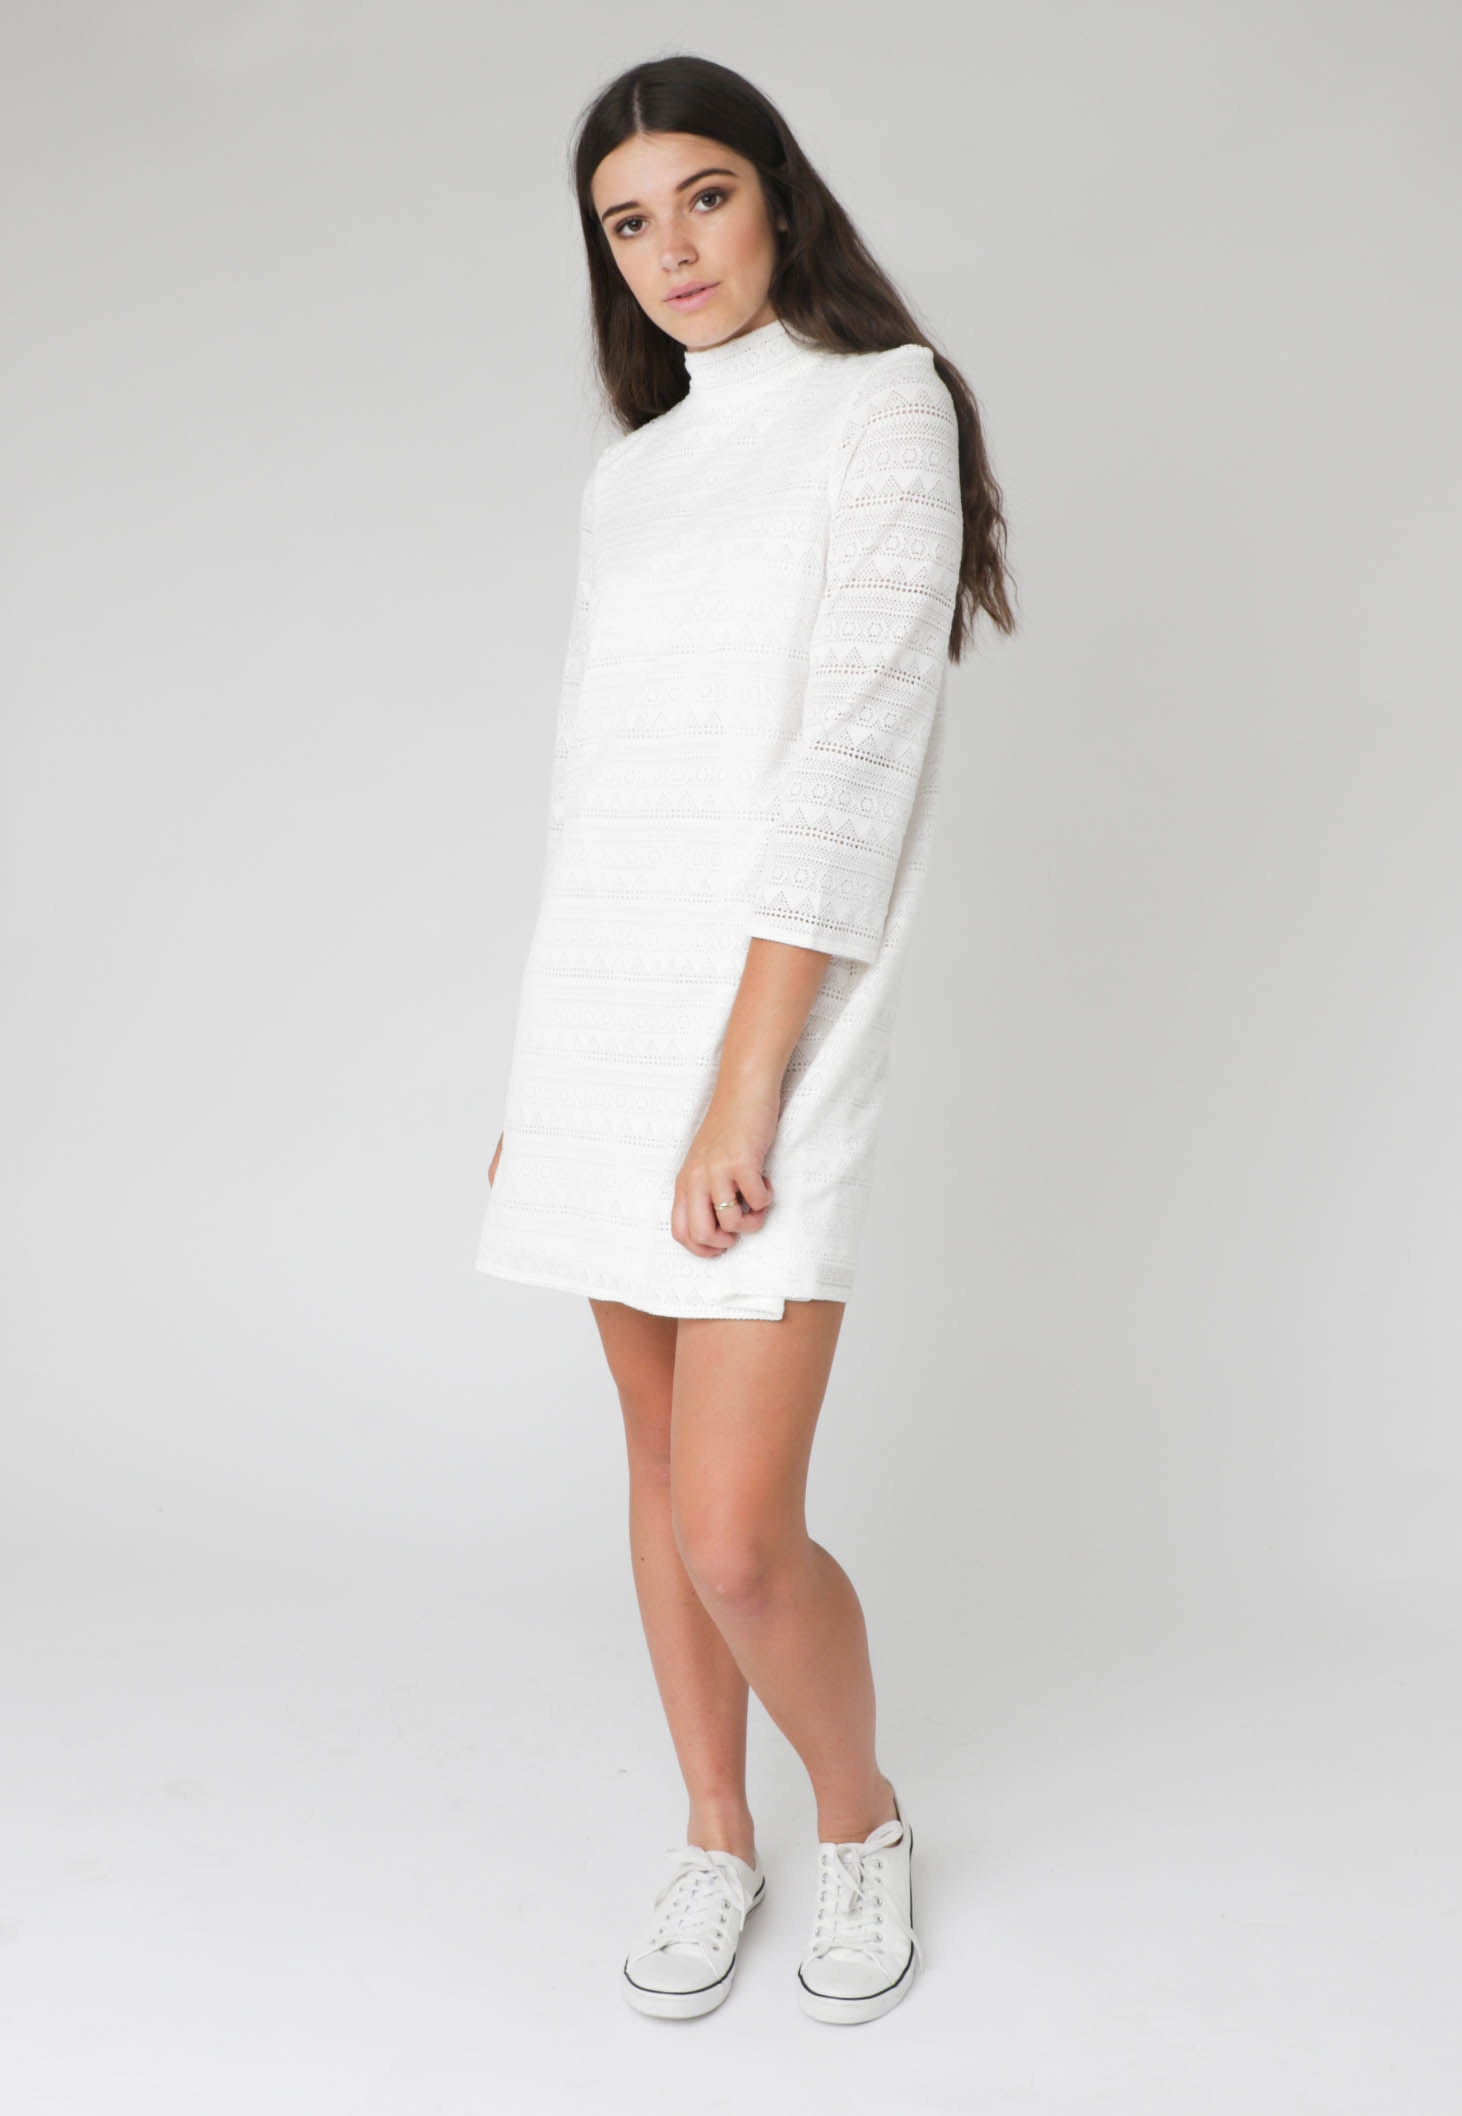 All About Eve - Love and Light Dress - White